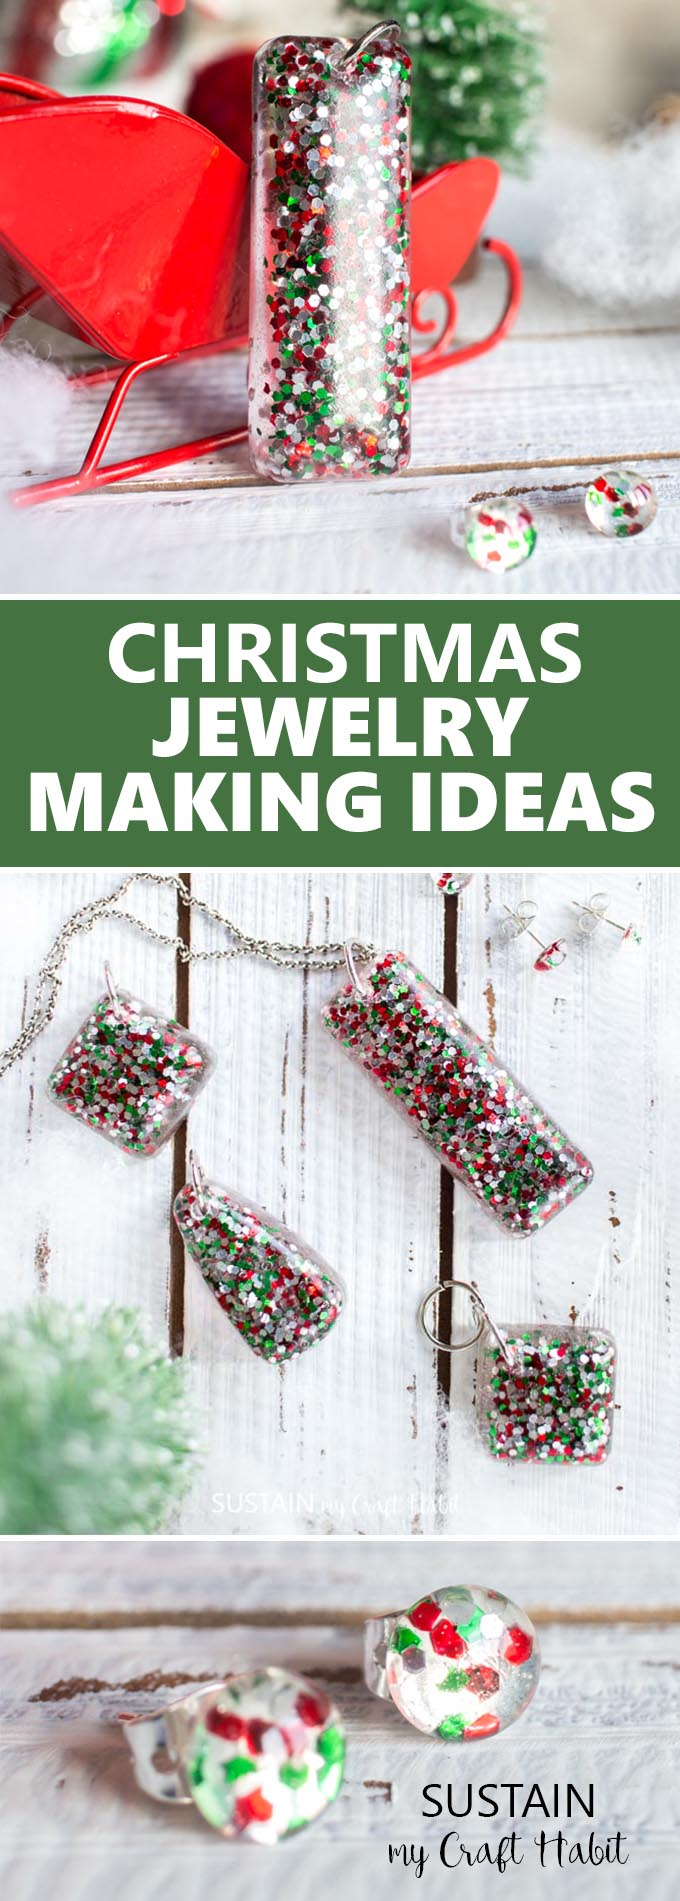 Beautiful handmade Christmas jewelry gift ideas! Resin jewelry making ideas | DIY Christmas earrings gift ideas | How to make resin jewellery #resincrafts #resincraftsblog #diyjewelry